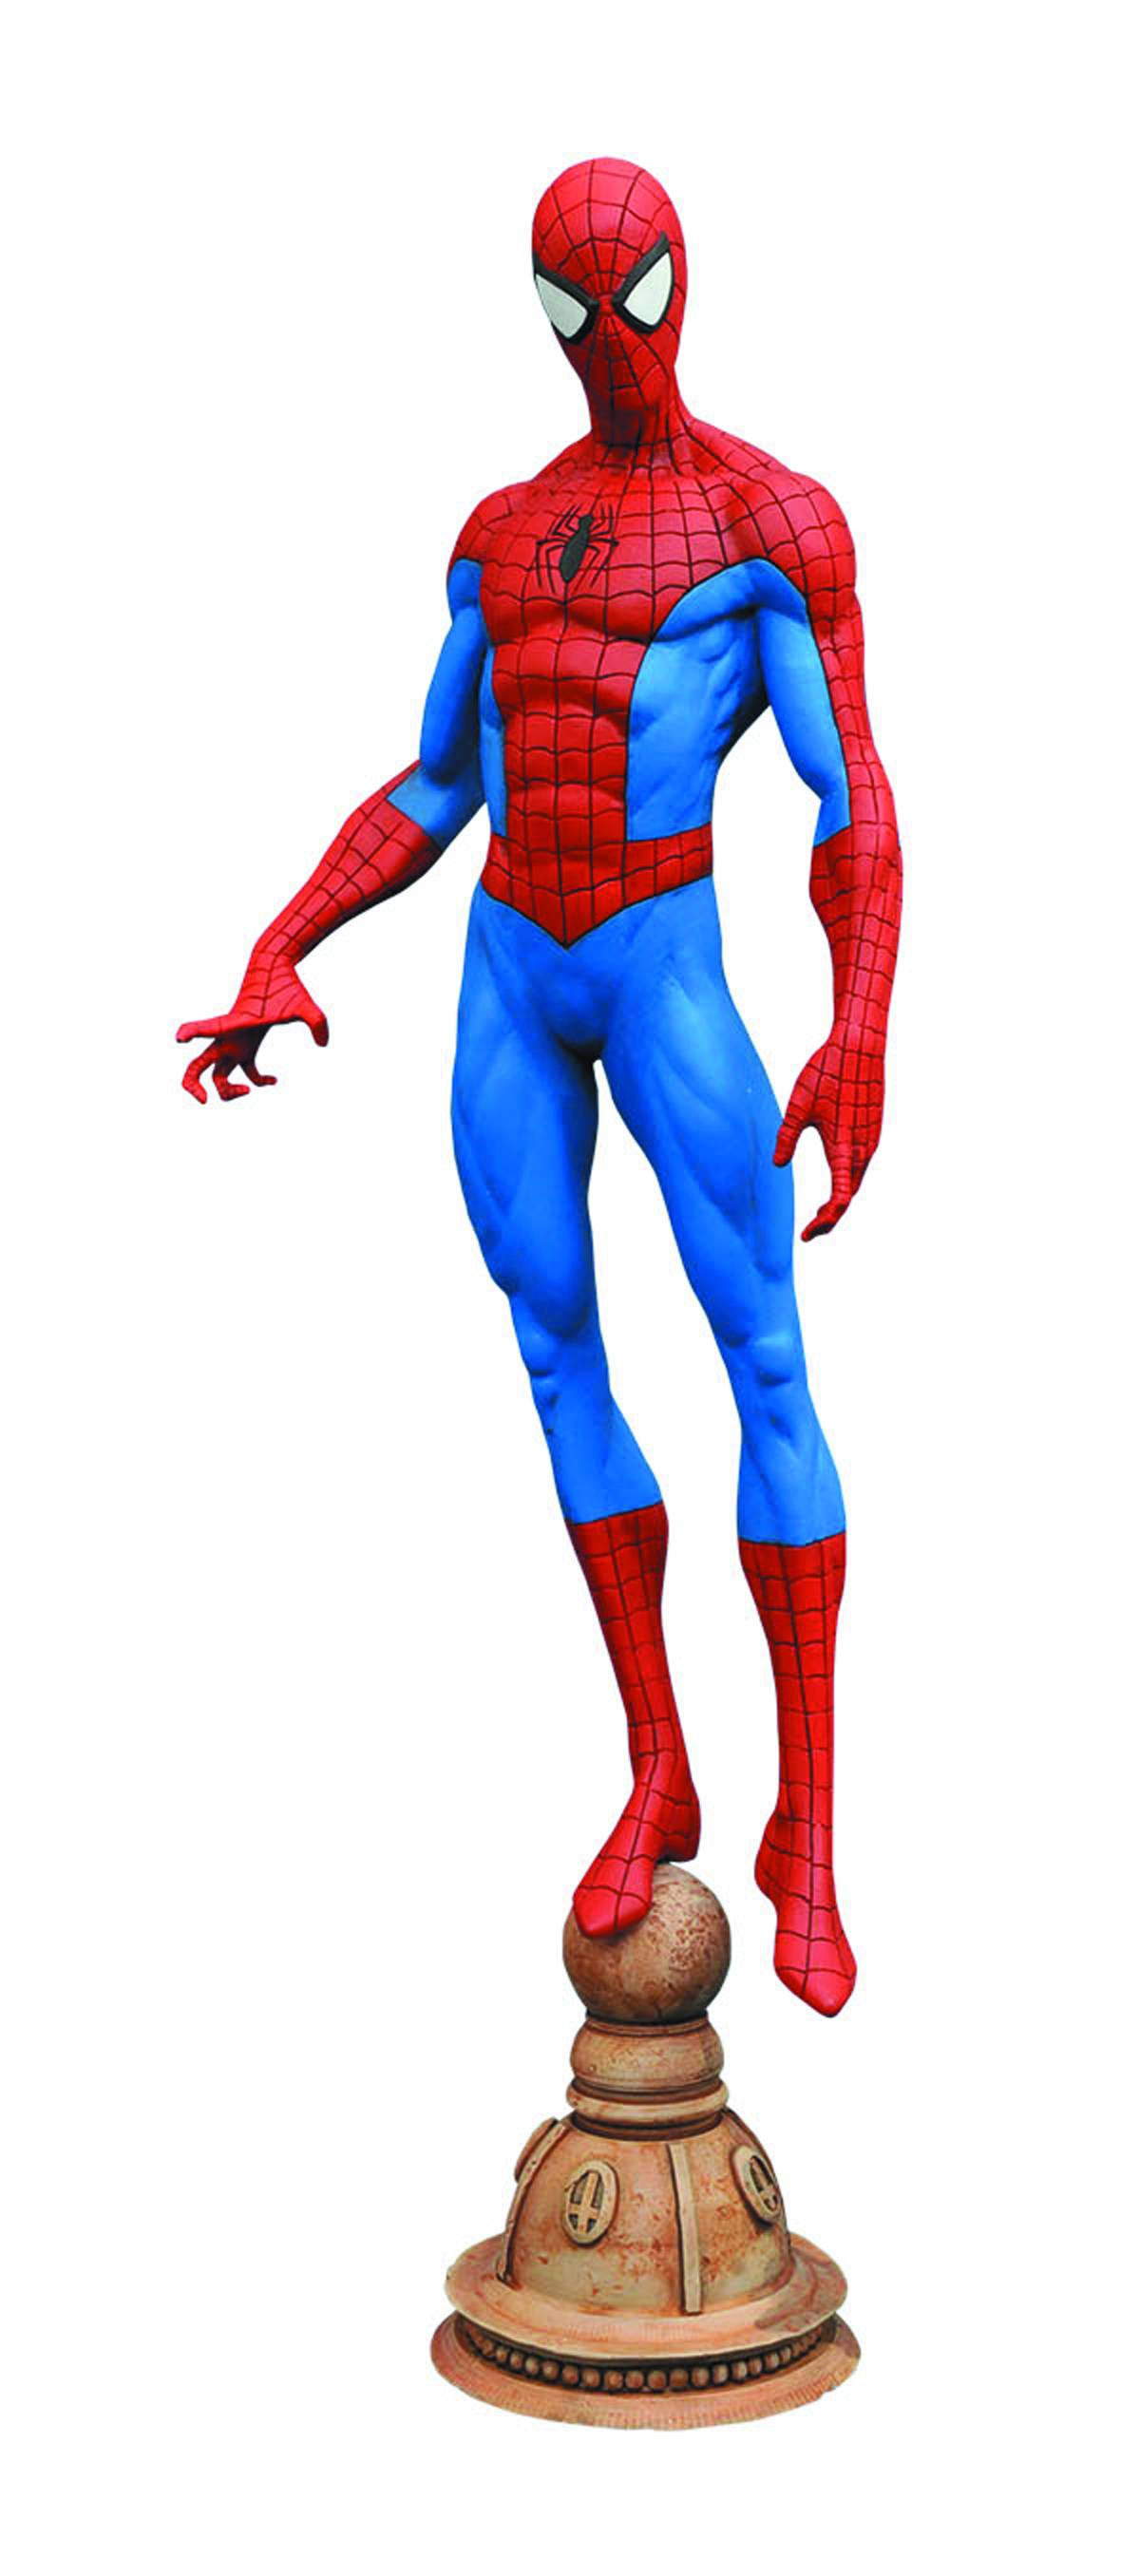 Diamond Marvel Gallery Spider-Man Statue